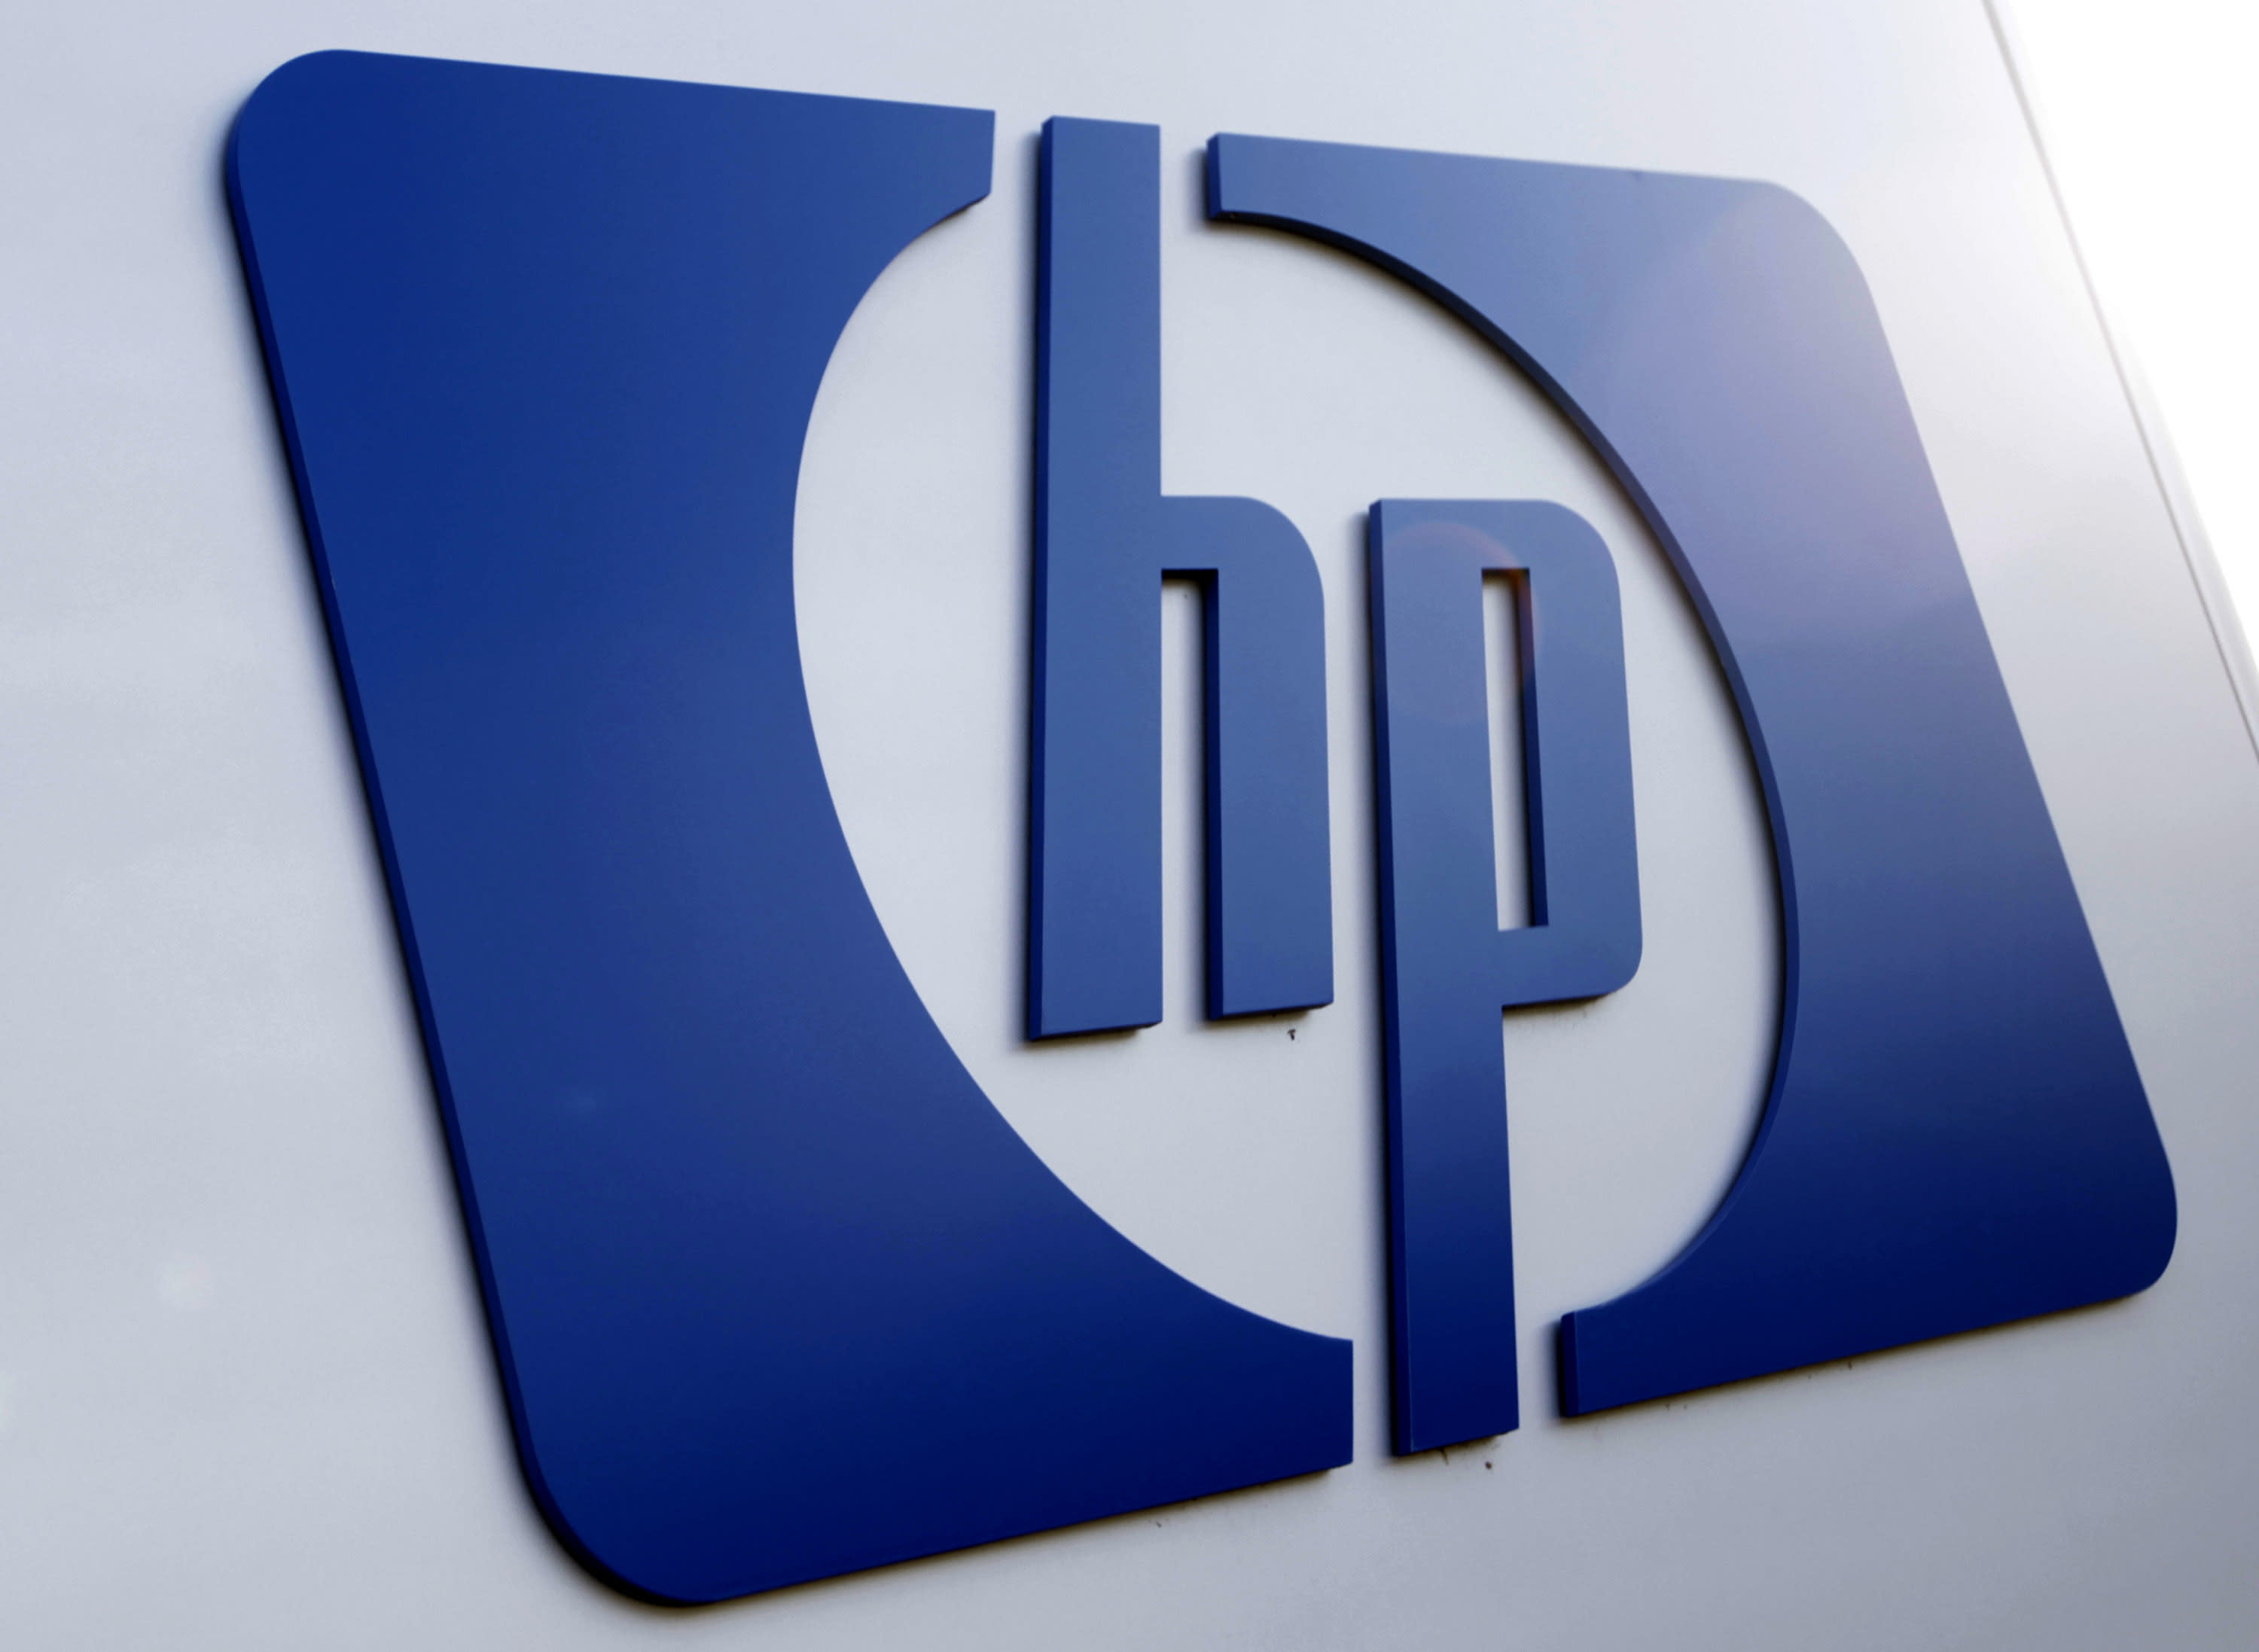 Meg Whitman hints she will offshore jobs at HP's most troubled unit